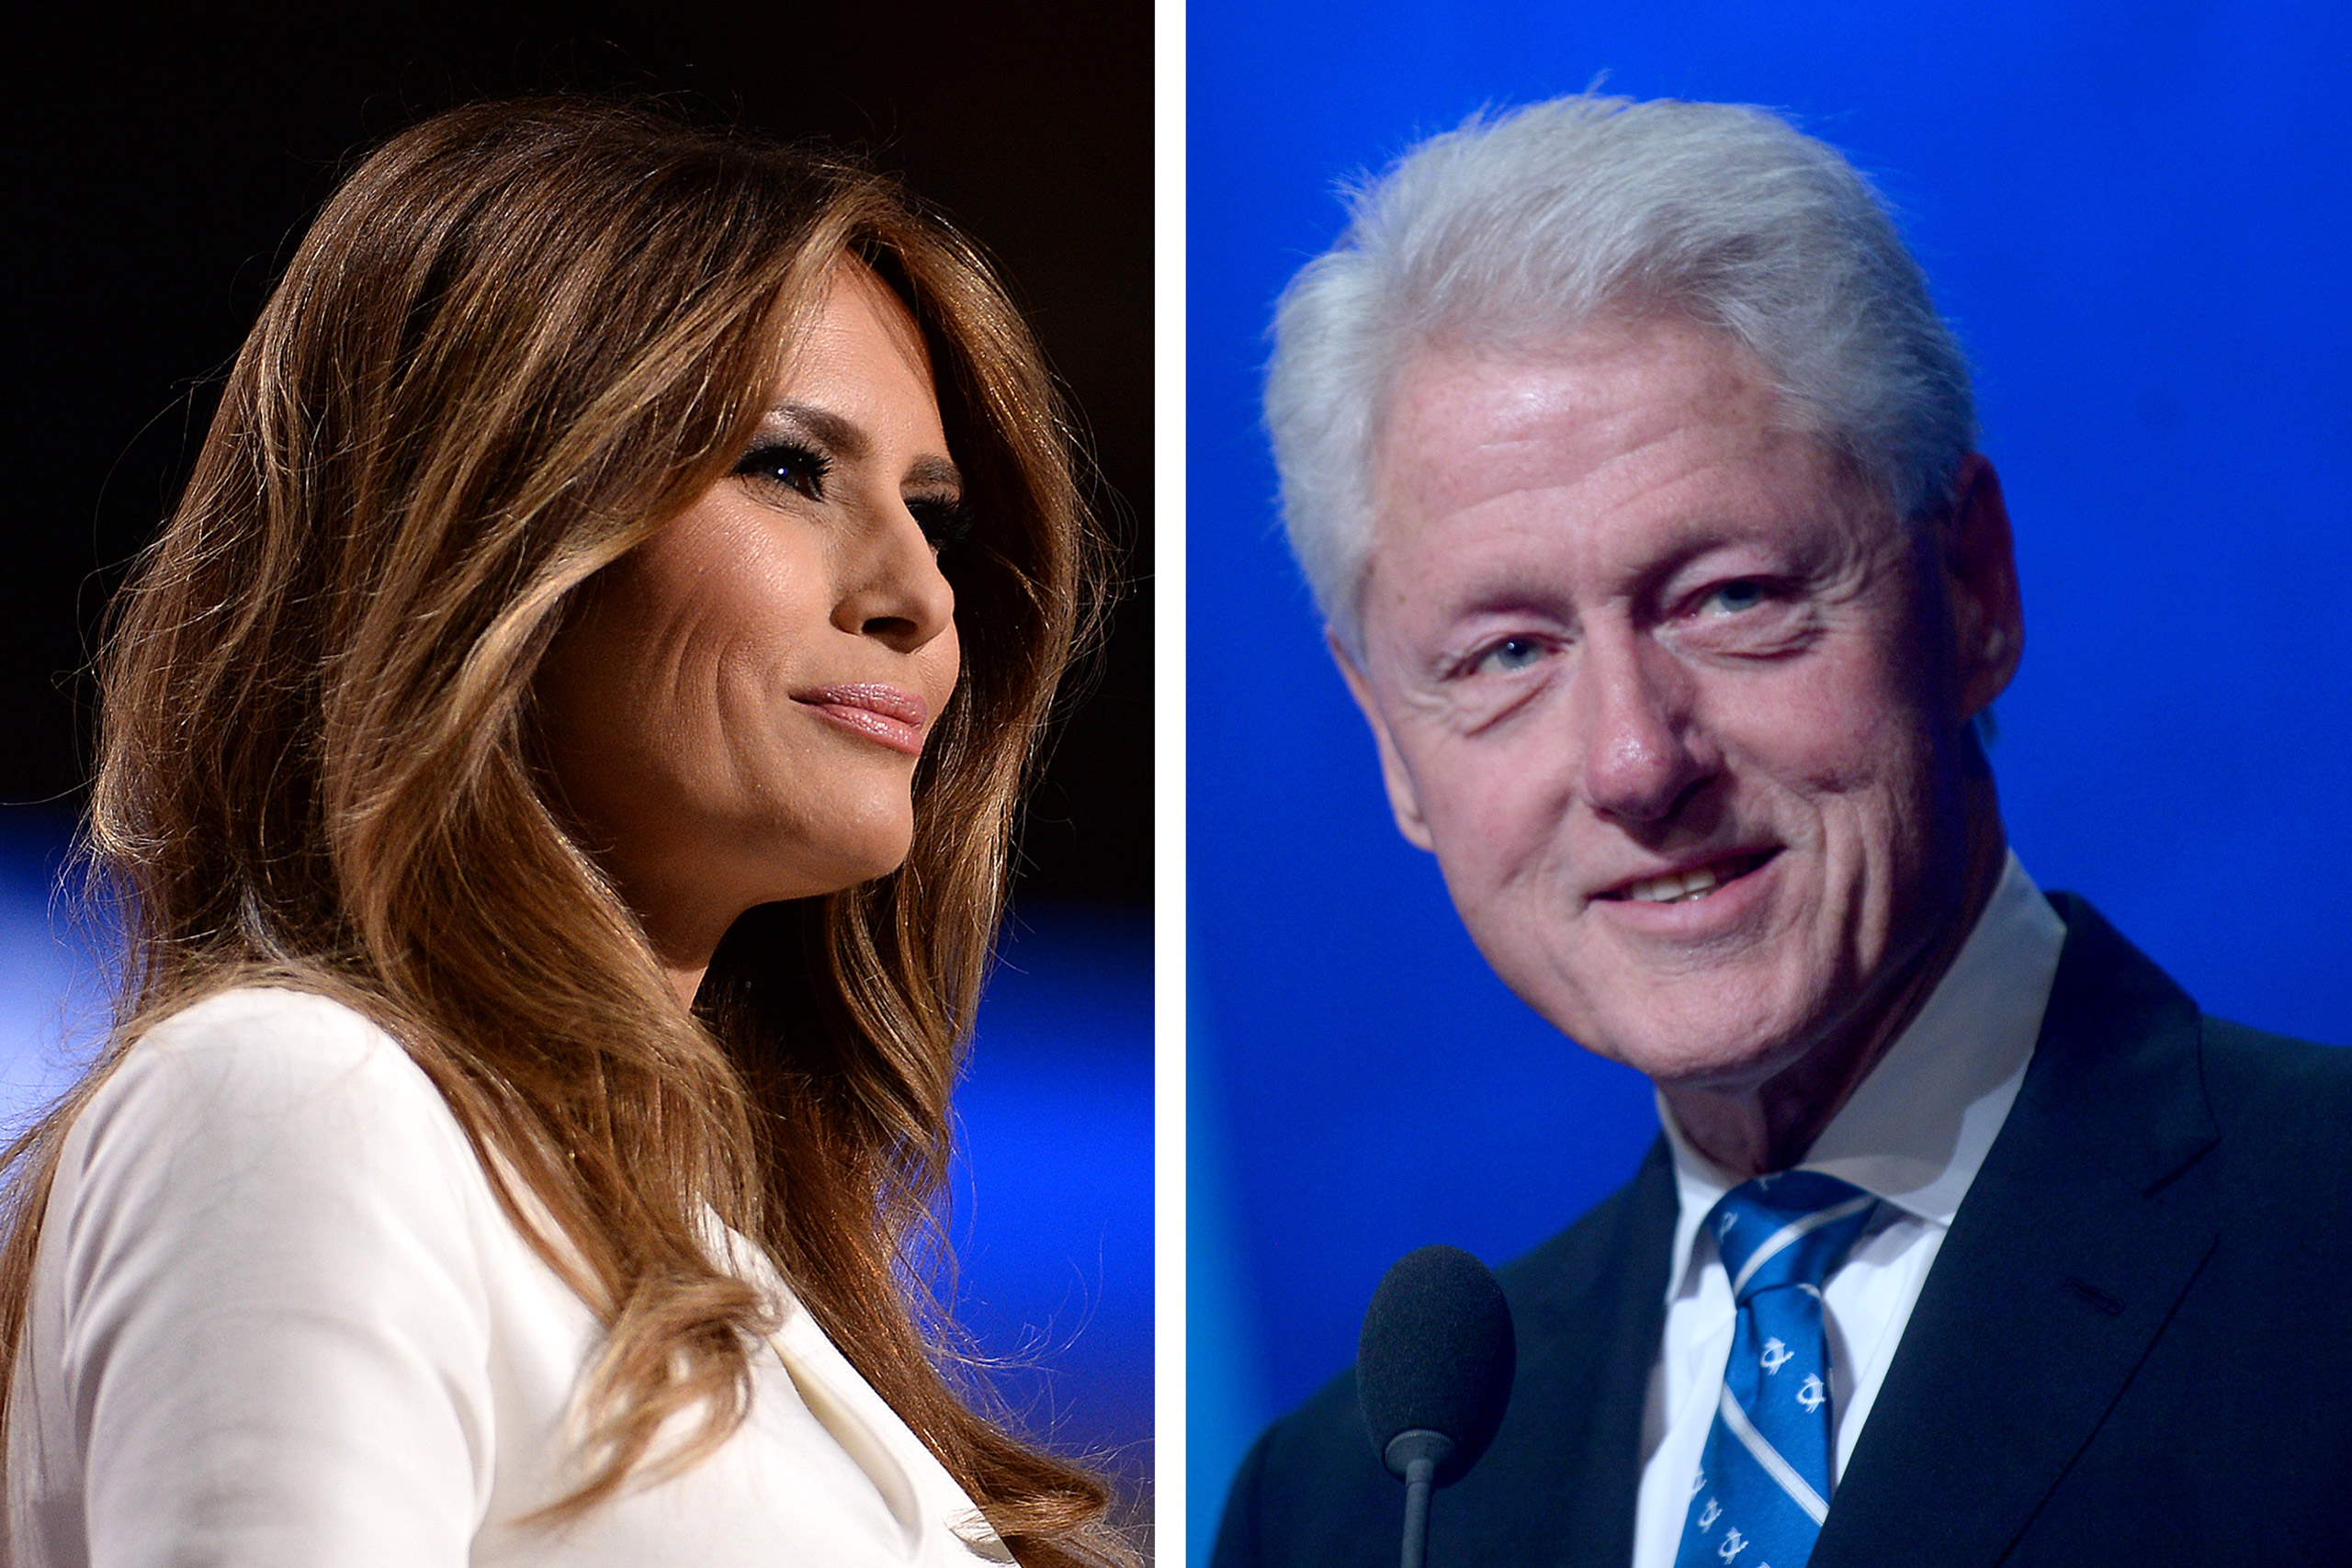 Left: Melania Trump at he Republican National Convention in Cleveland, Oh., on July 18, 2016; Right: Bill Clinton at the annual meeting of the Clinton Global Initiative in New York City on Sept. 19, 2016.